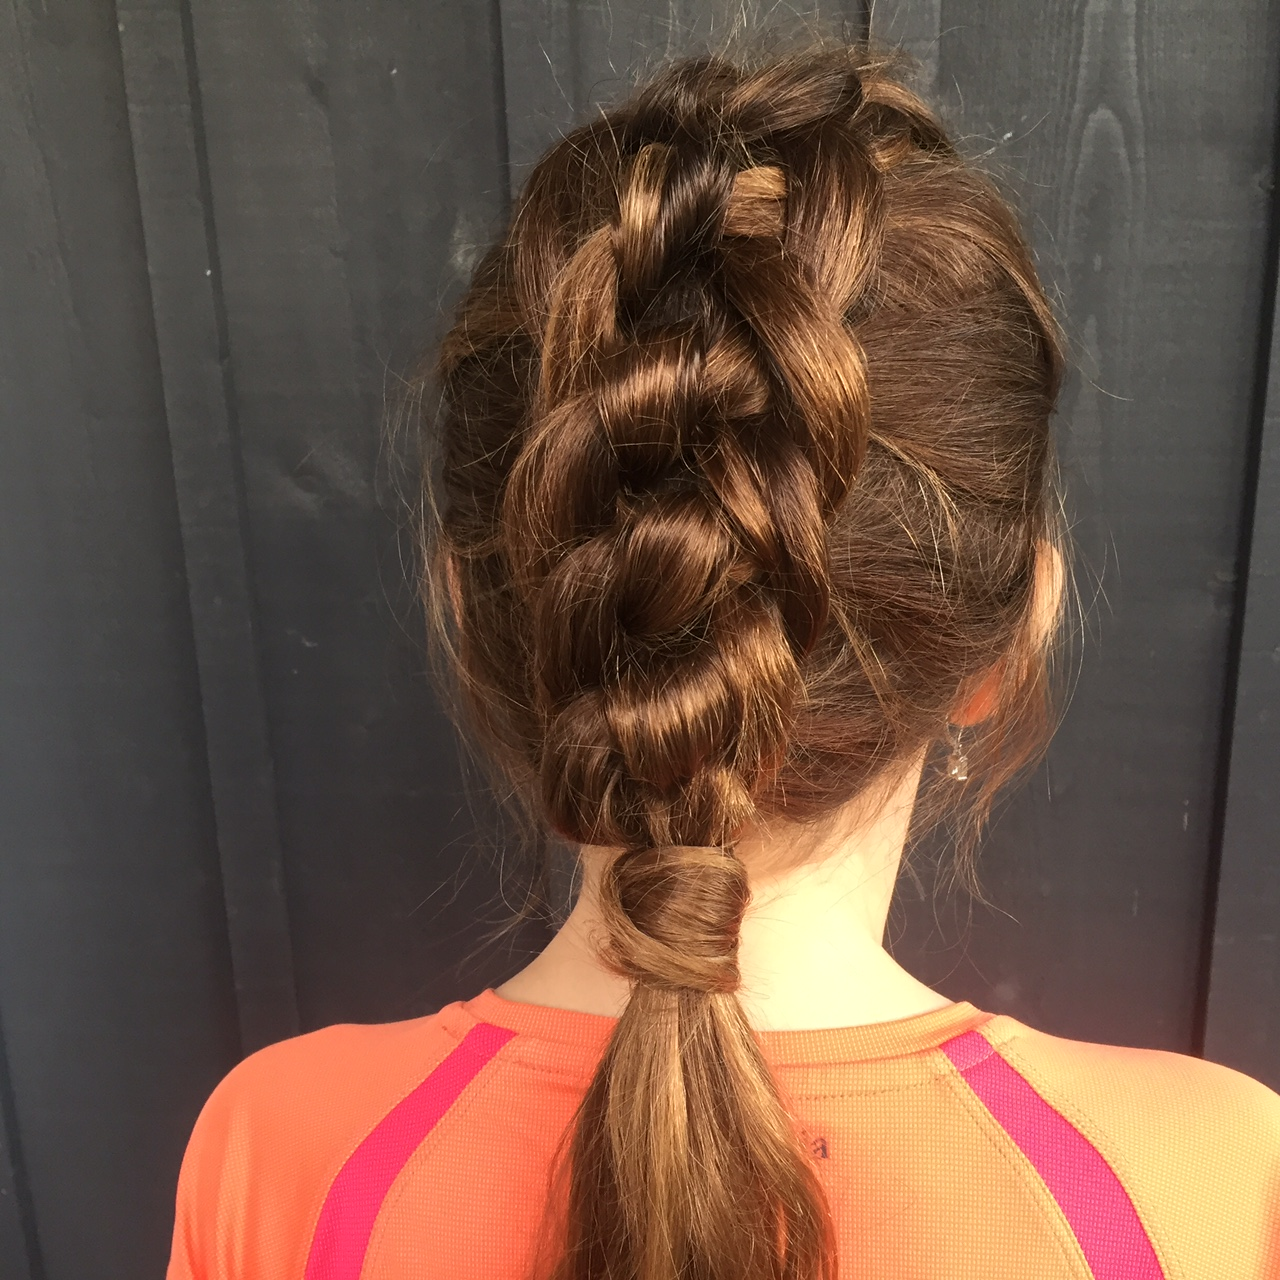 Super How To Knot Braid Hair Video Solution For How To For Dummies Hairstyle Inspiration Daily Dogsangcom